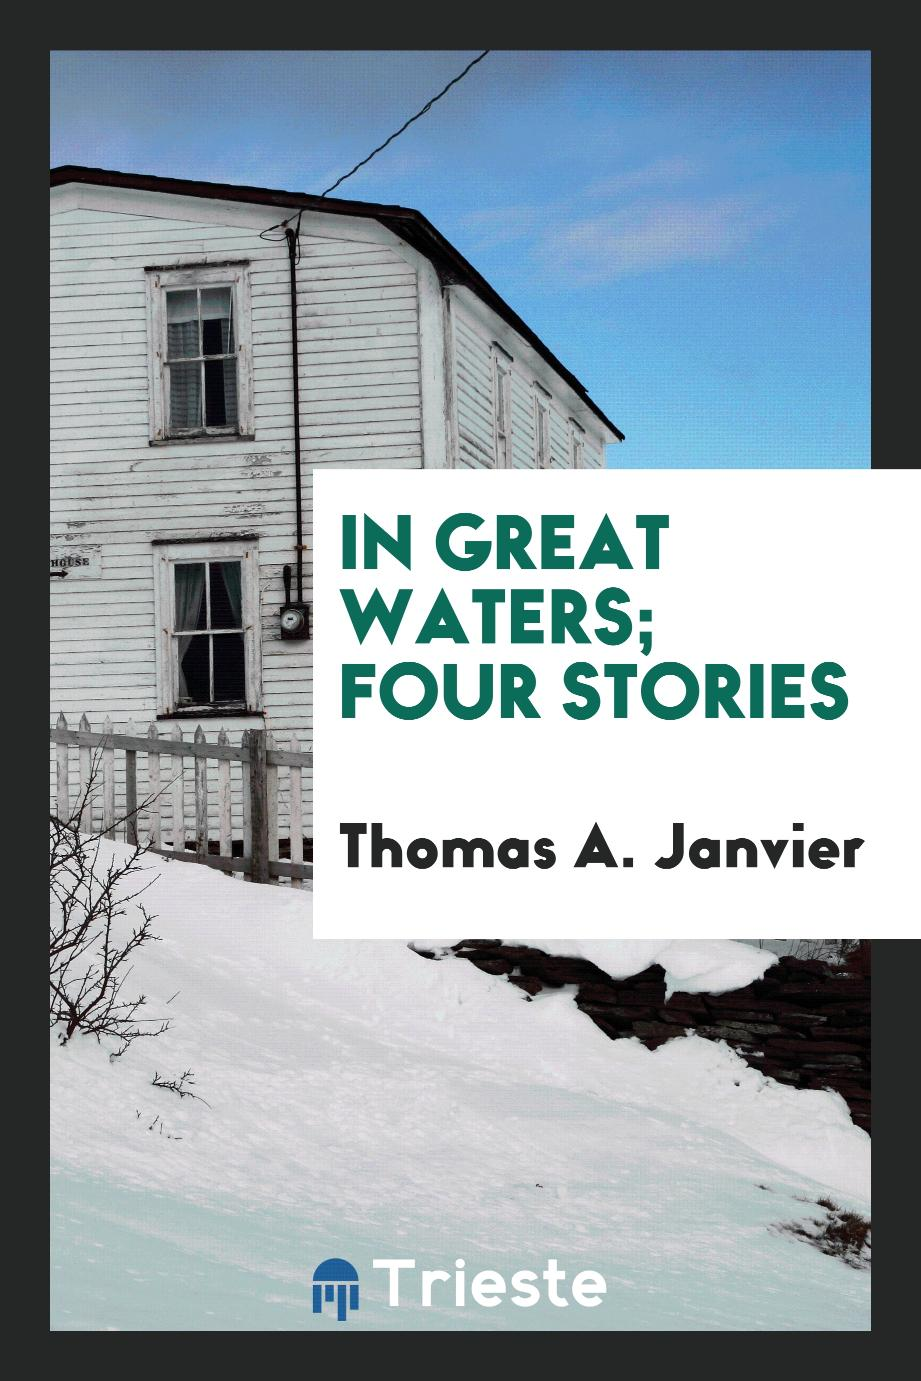 In great waters; four stories